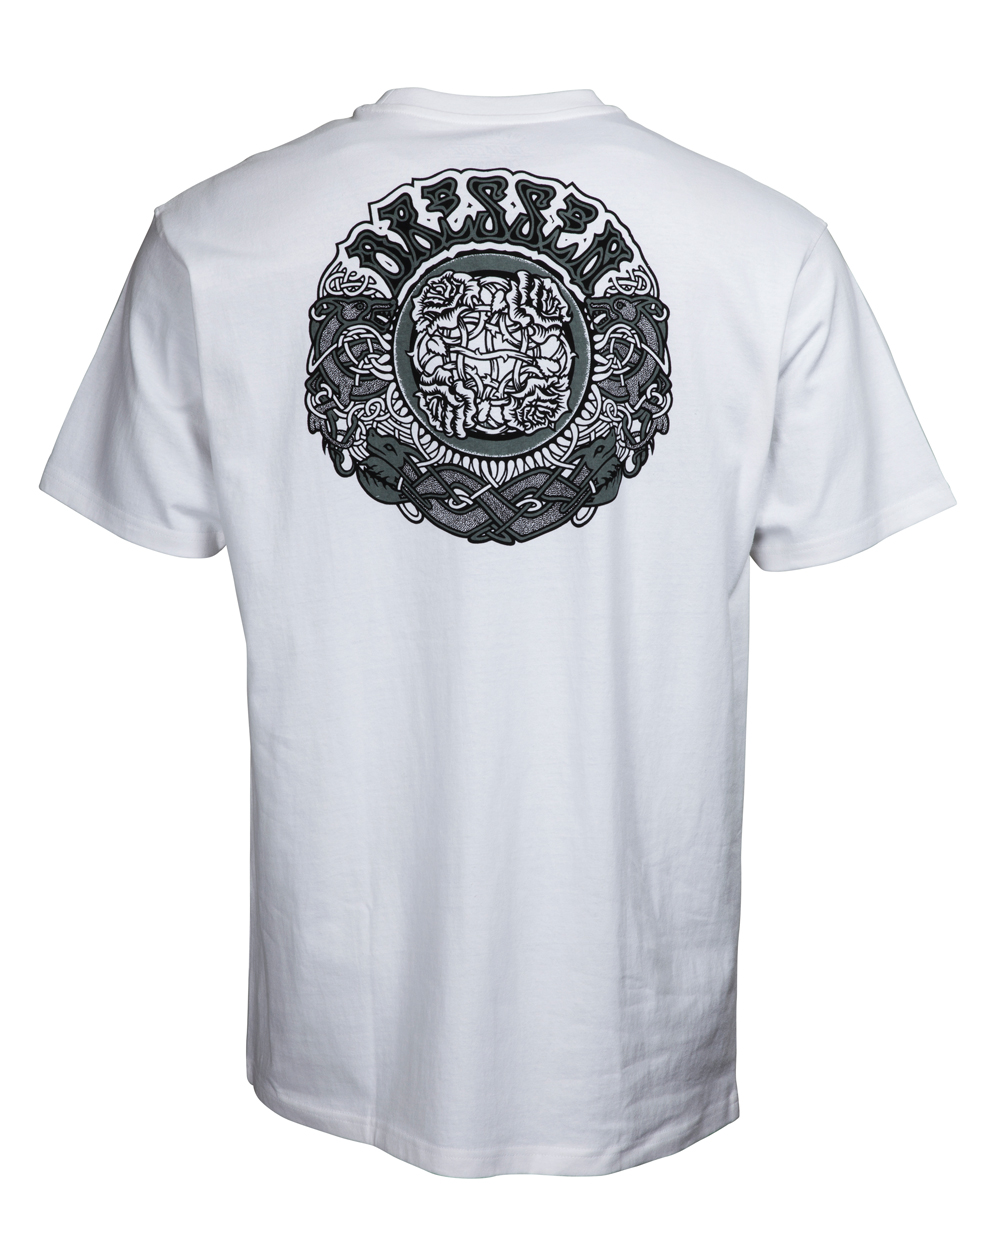 Santa Cruz Men's T-Shirt Dressen Black Roses White